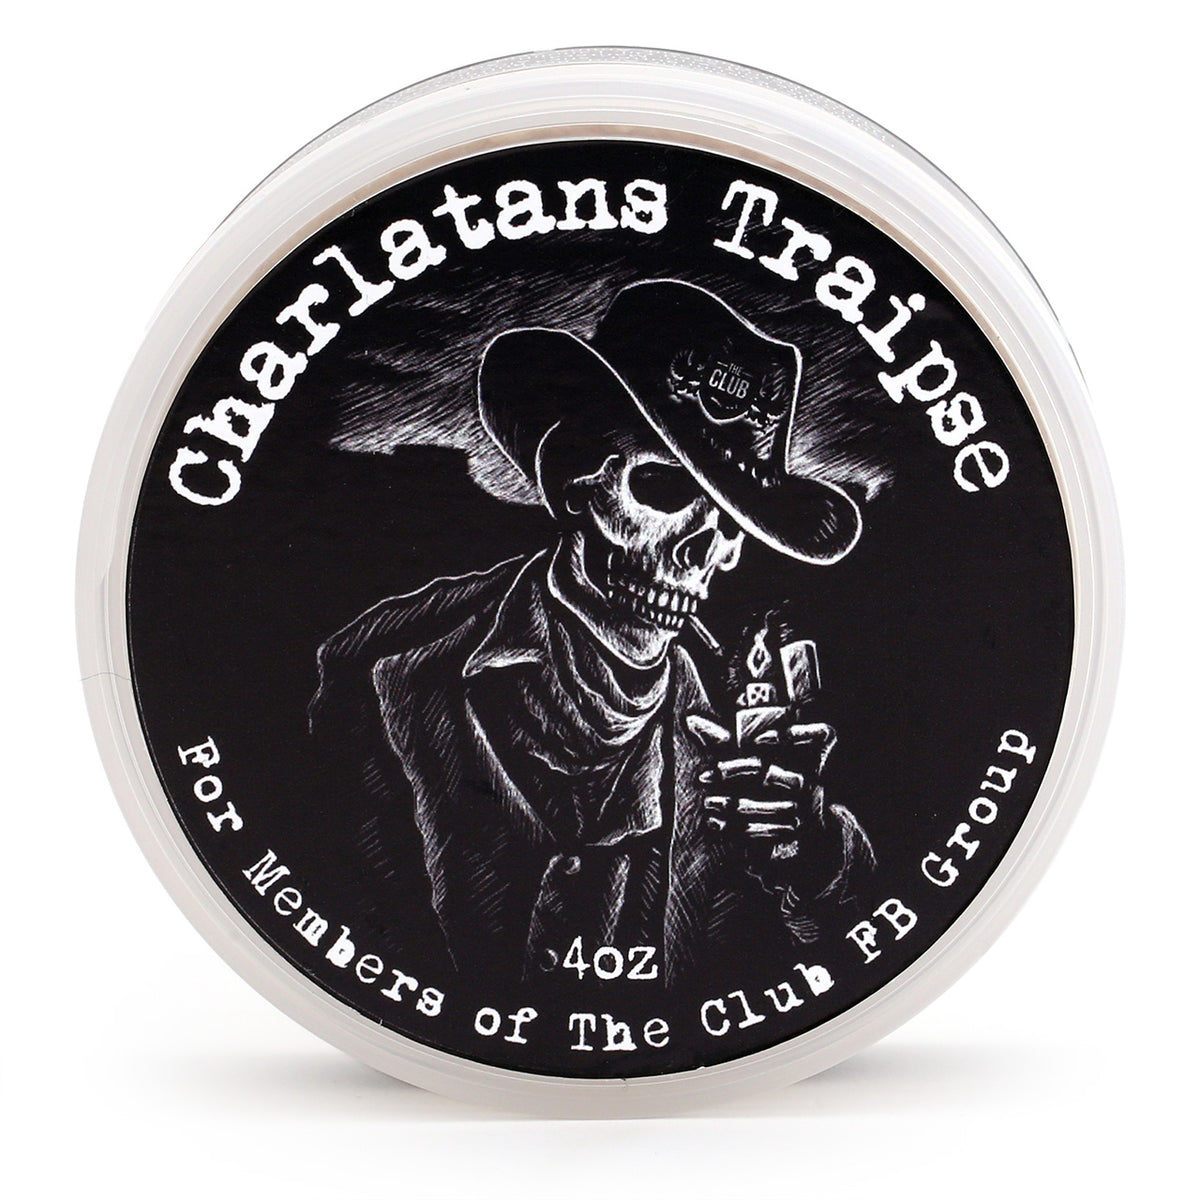 A & E Shave Soap - Charlatan's Traipse, Top view